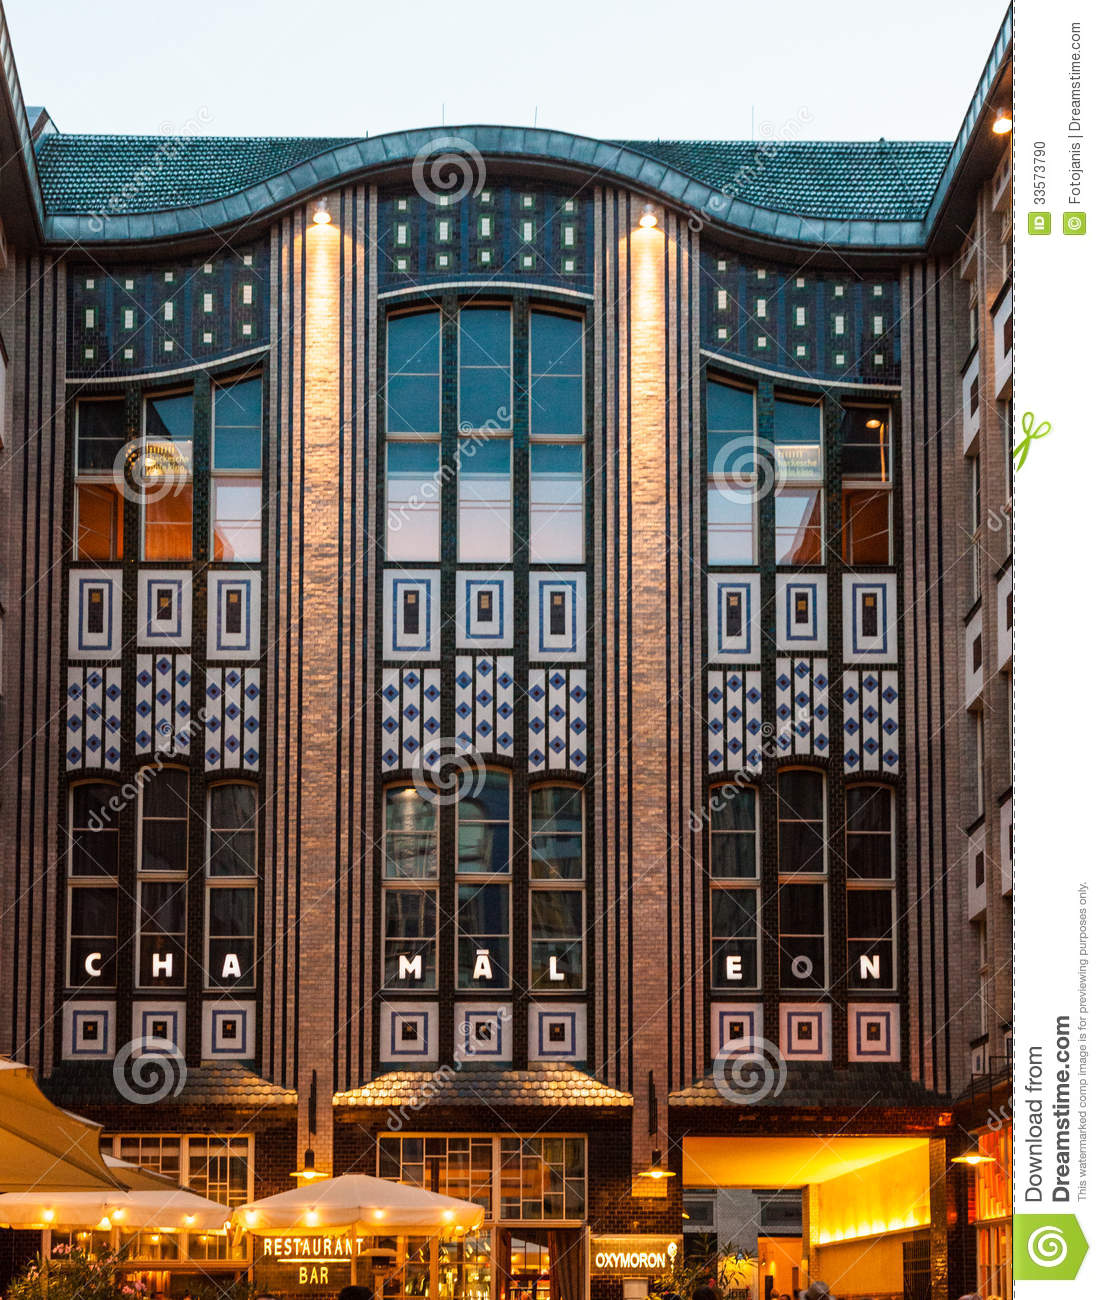 Art deco style architecture - Art Berlin Germany Hackescher Hof Jugendstil Nouveau